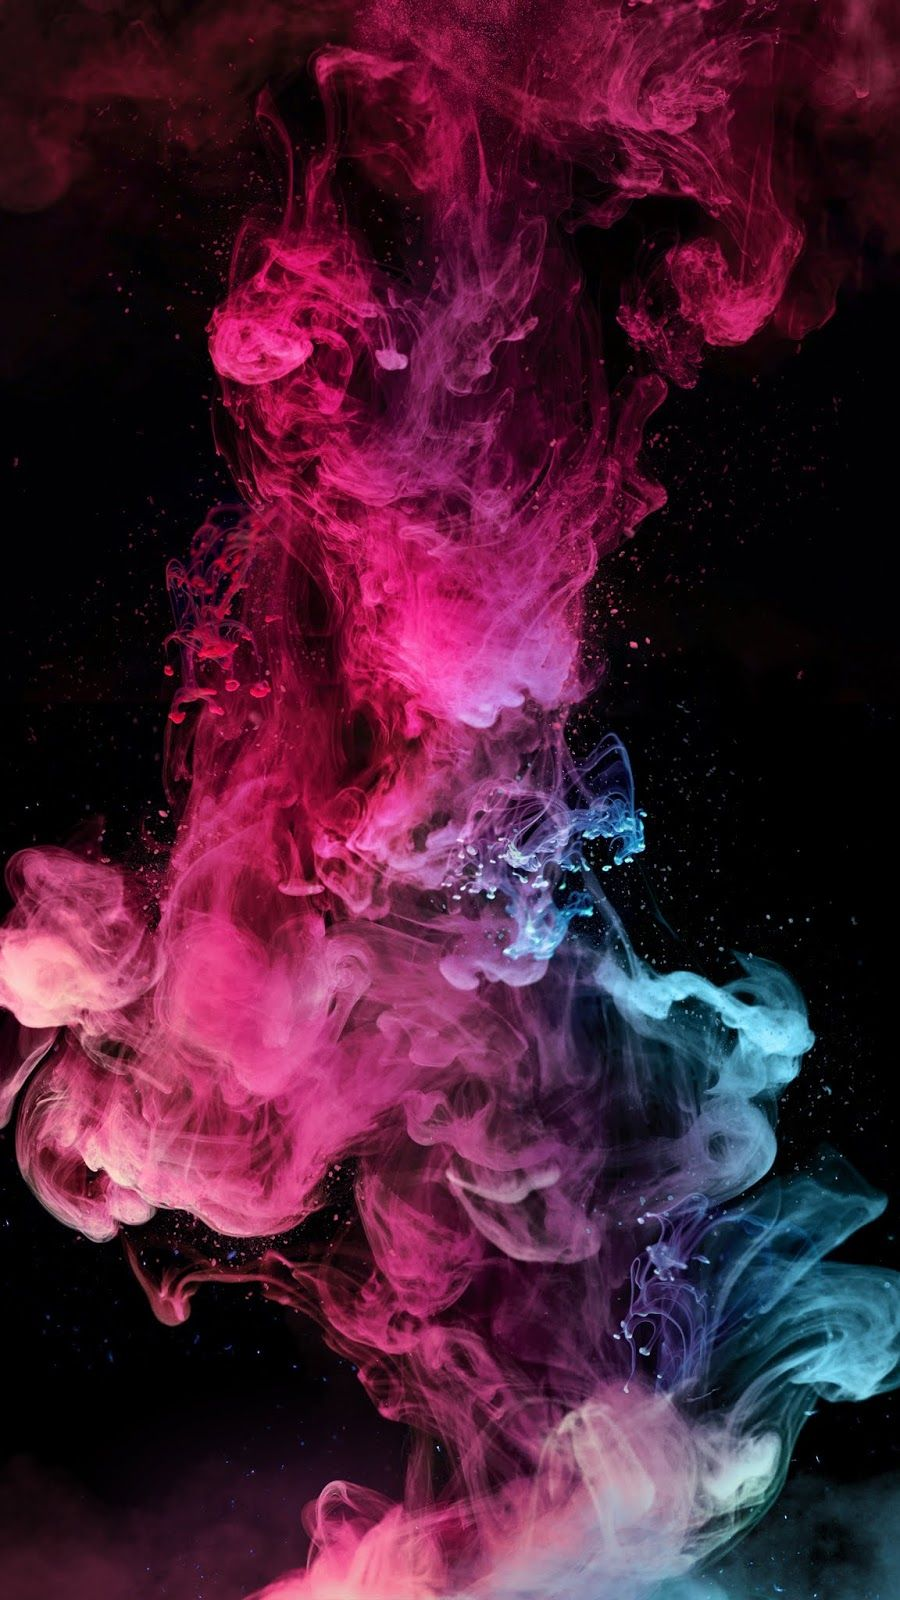 Colorful Splash Live Wallpaper Iphone Smoke Wallpaper Abstract